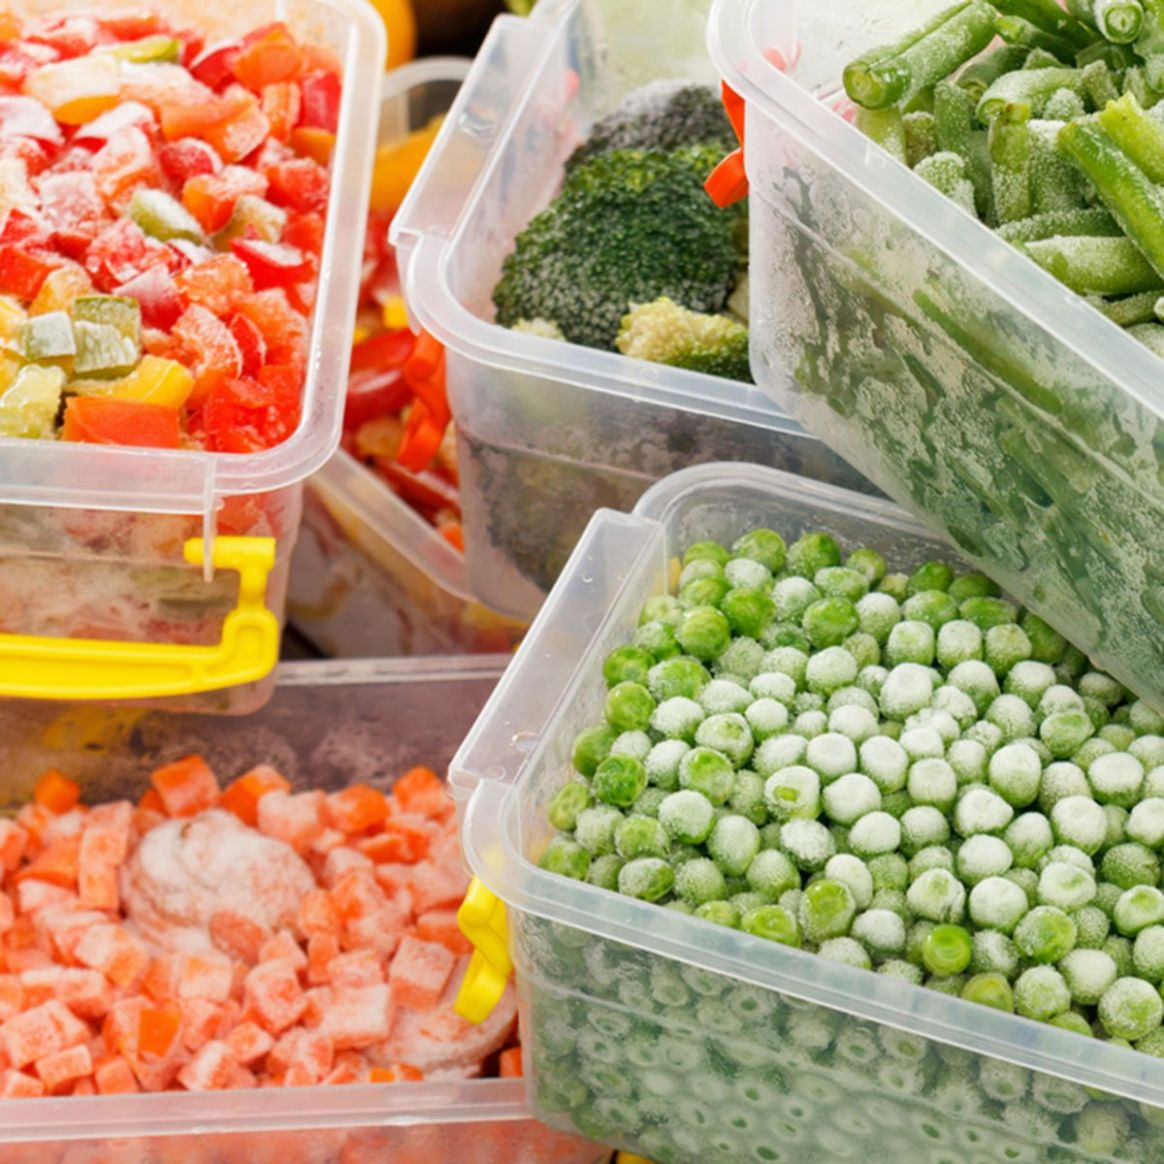 11 Foods That Freeze Well | Taste of Home - Vegetable Recipes You Can Freeze